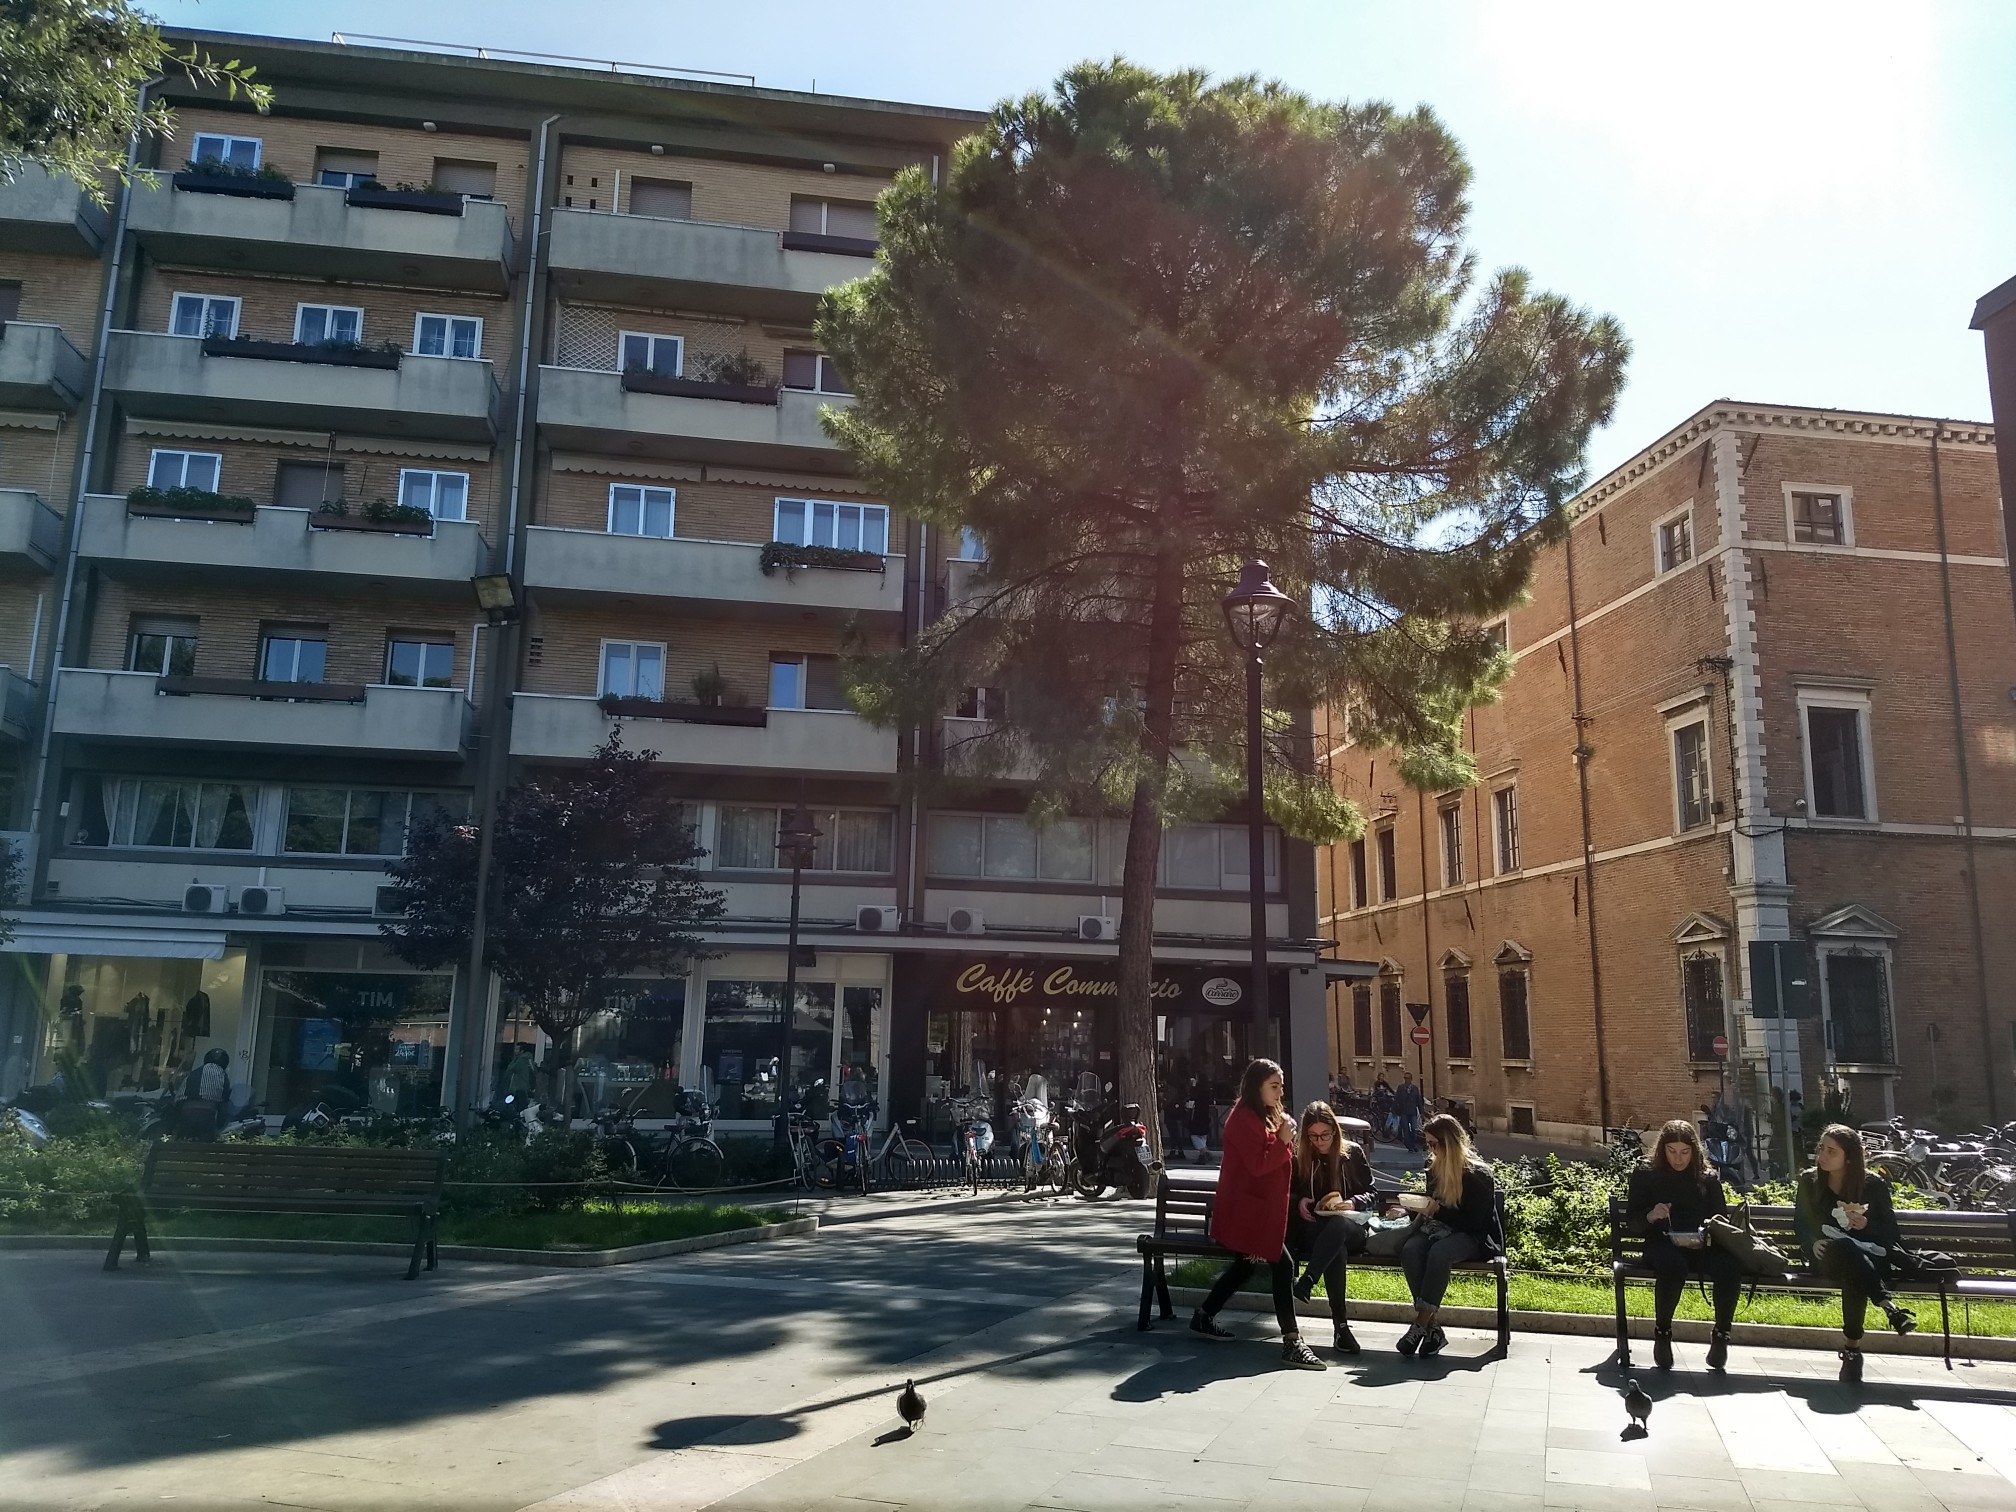 A square with trees, modern apartment buildings, old brick buildings, and young people talking and sitting on benches